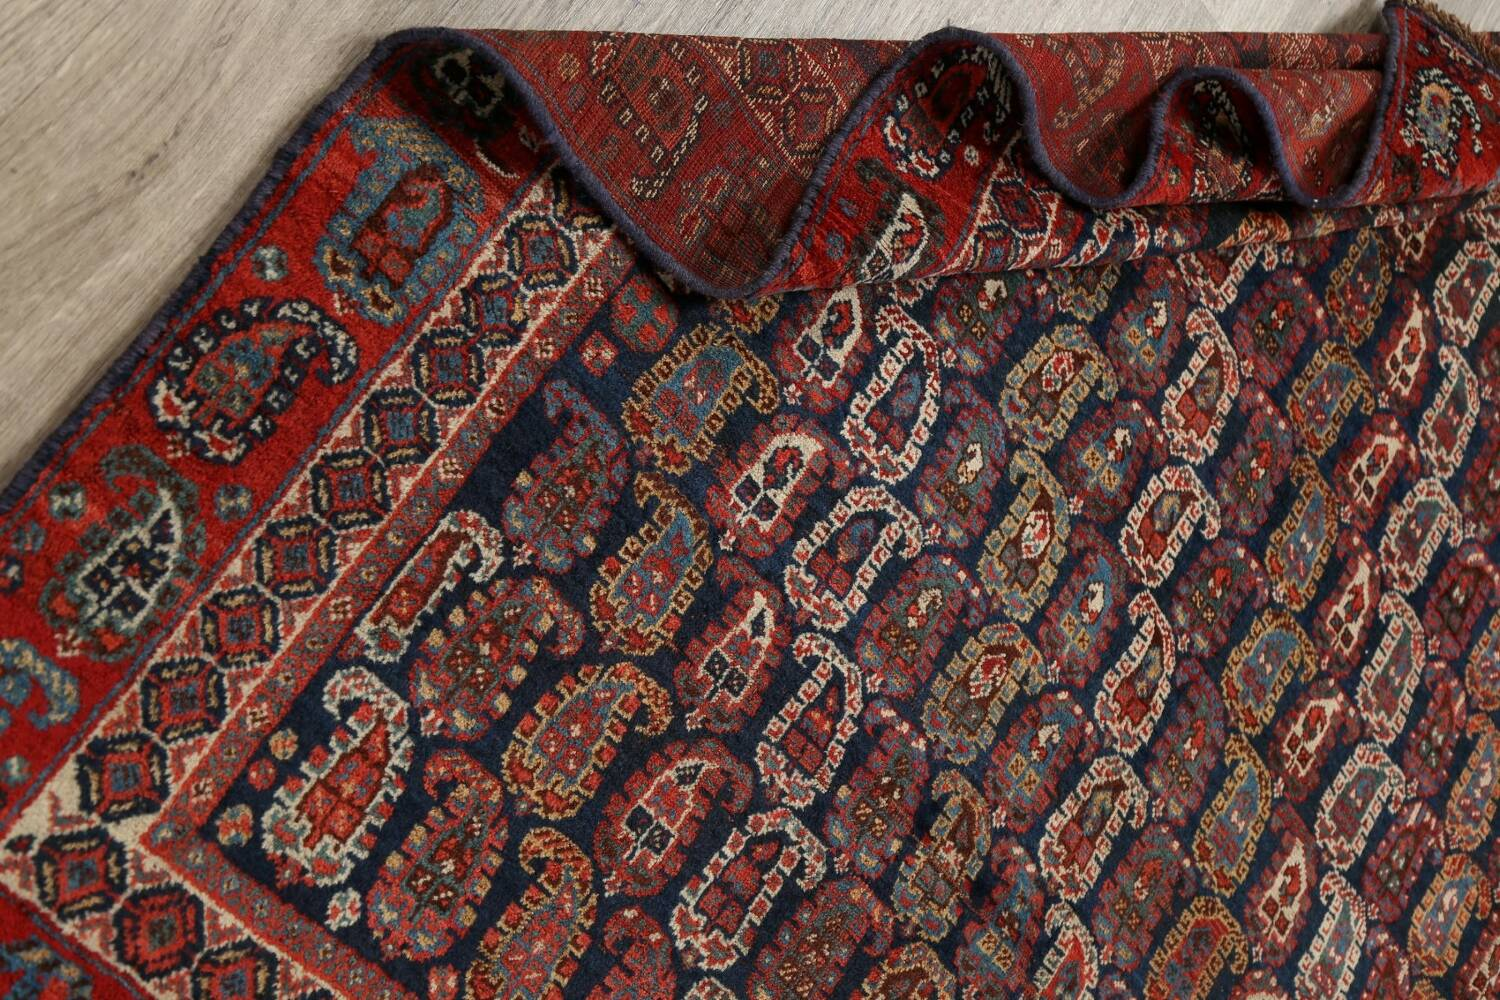 Pre-1900 Antique All-Over Malayer Persian Area Rug 6x7 image 18